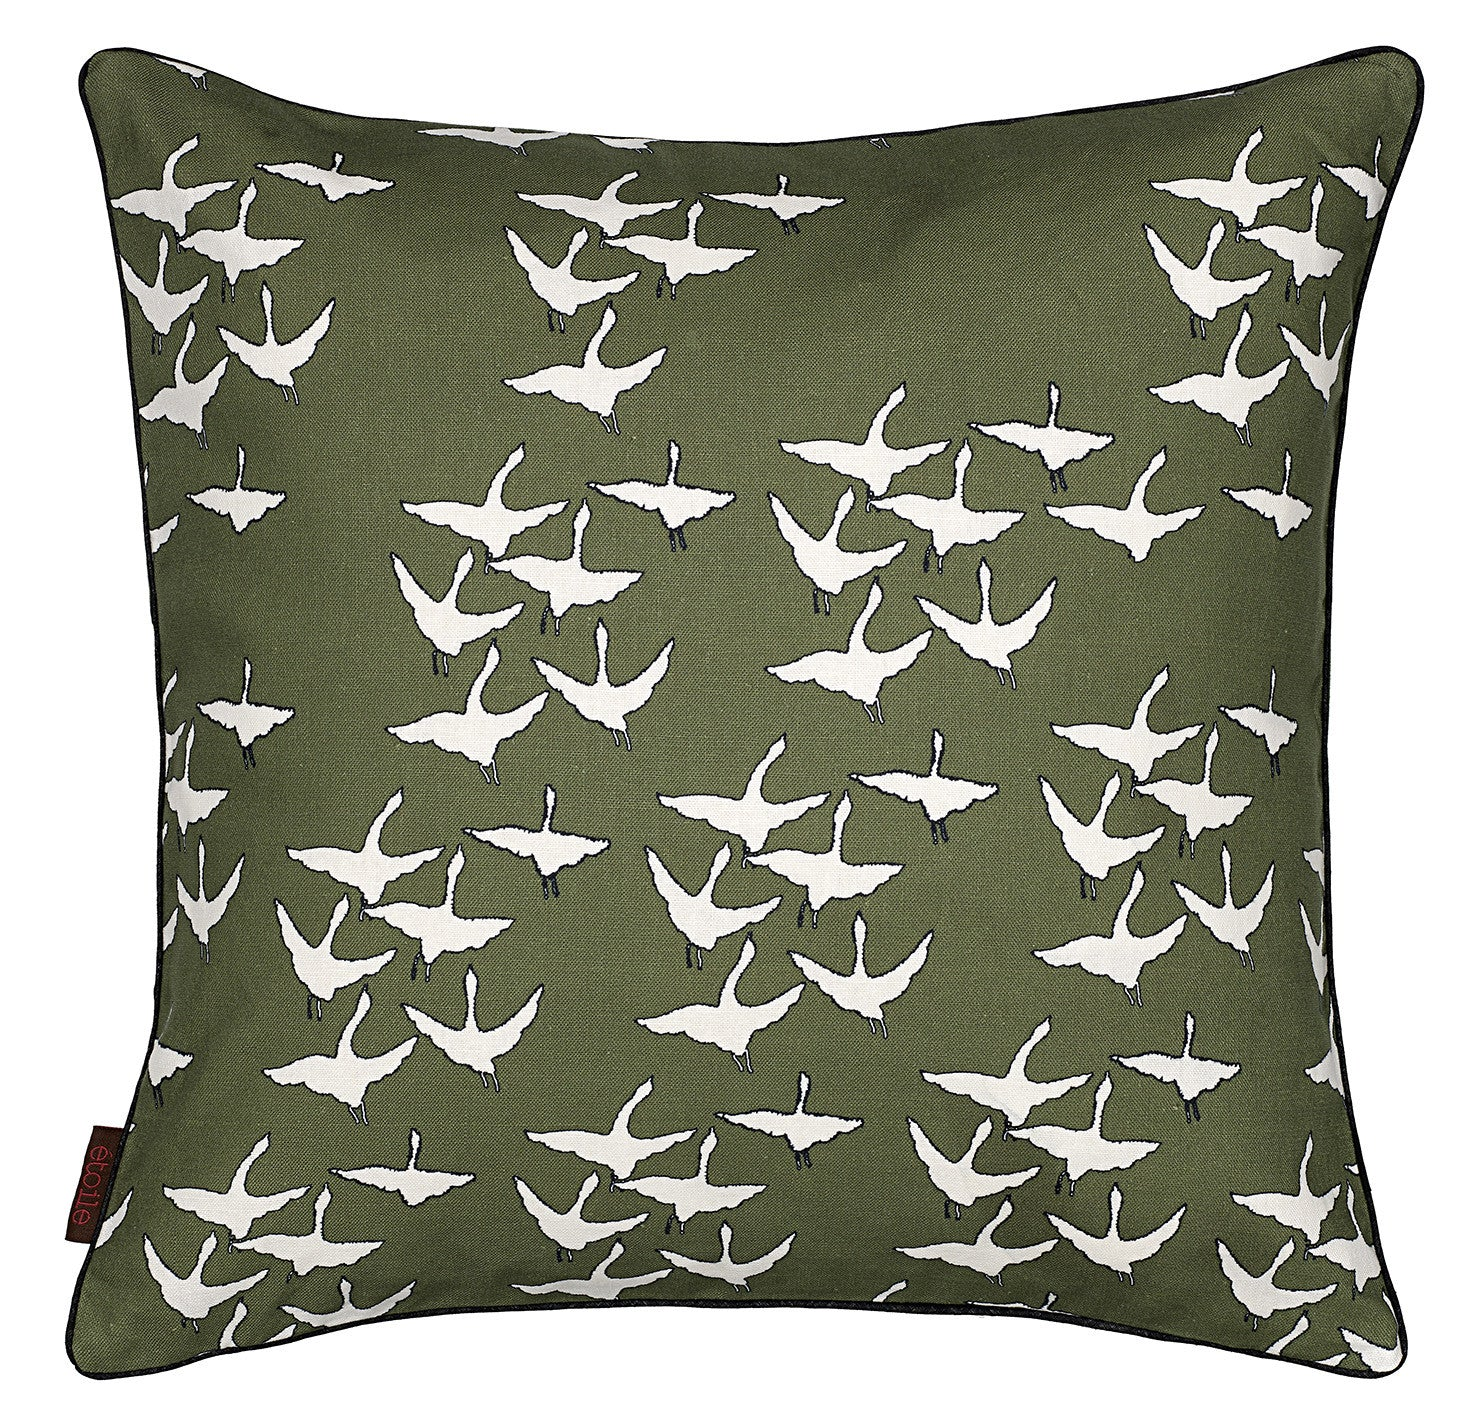 "Geese Pattern Cotton Linen Decorative Throw Pillow in Olive Green 45x45cm (18x18"")"